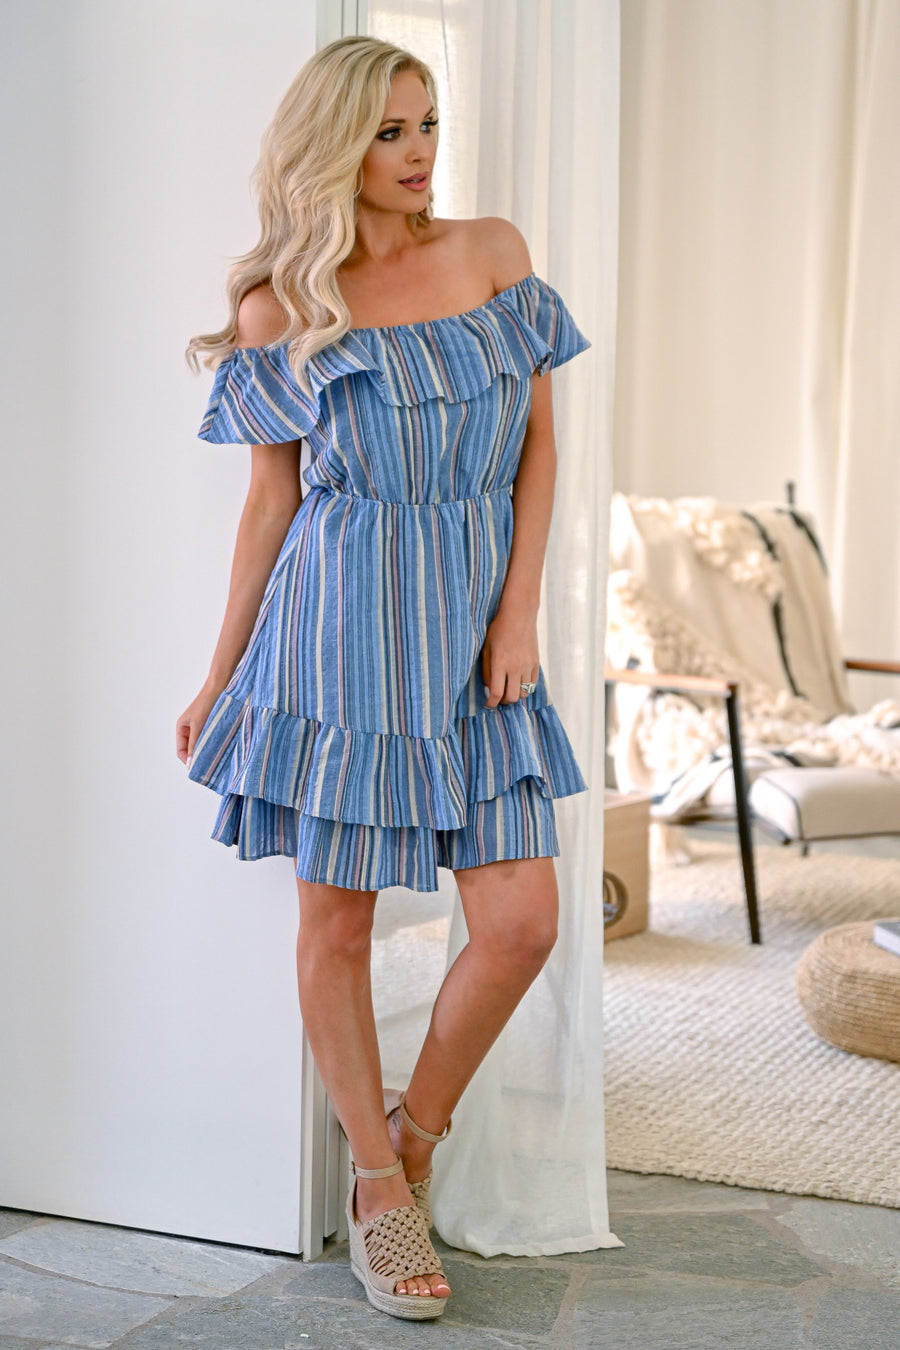 What It's All About Dress - Blue muti-color stripe print women's off the shoulder dress closet candy front